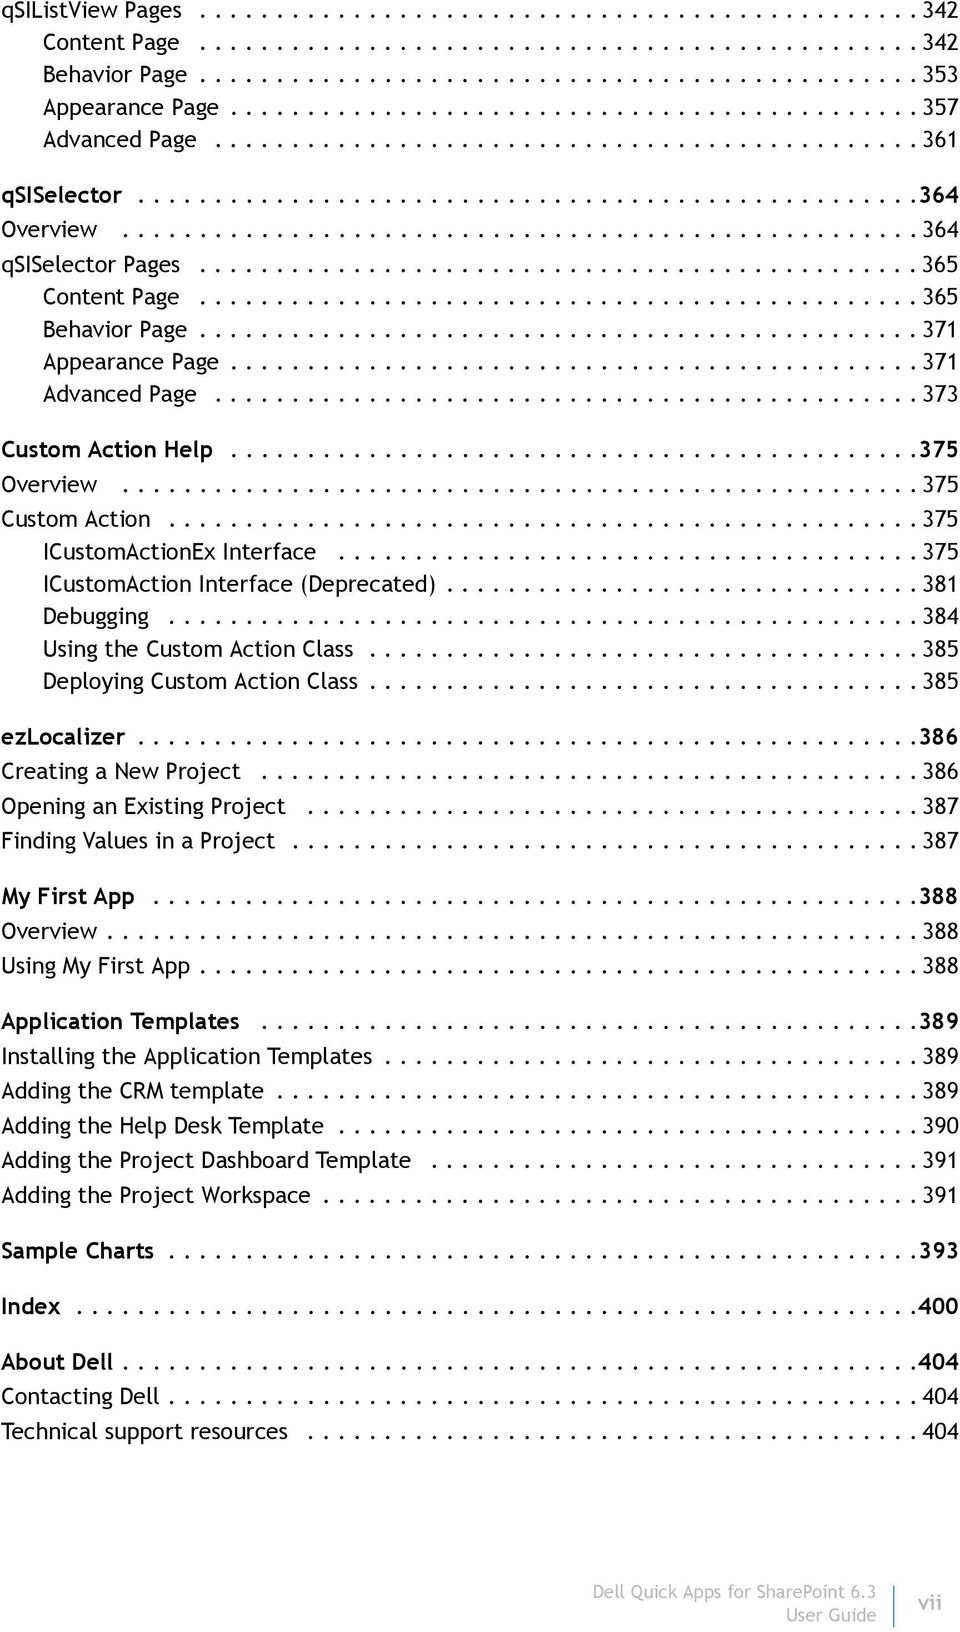 Dell Quick Apps for SharePoint 6 3  User Guide - PDF